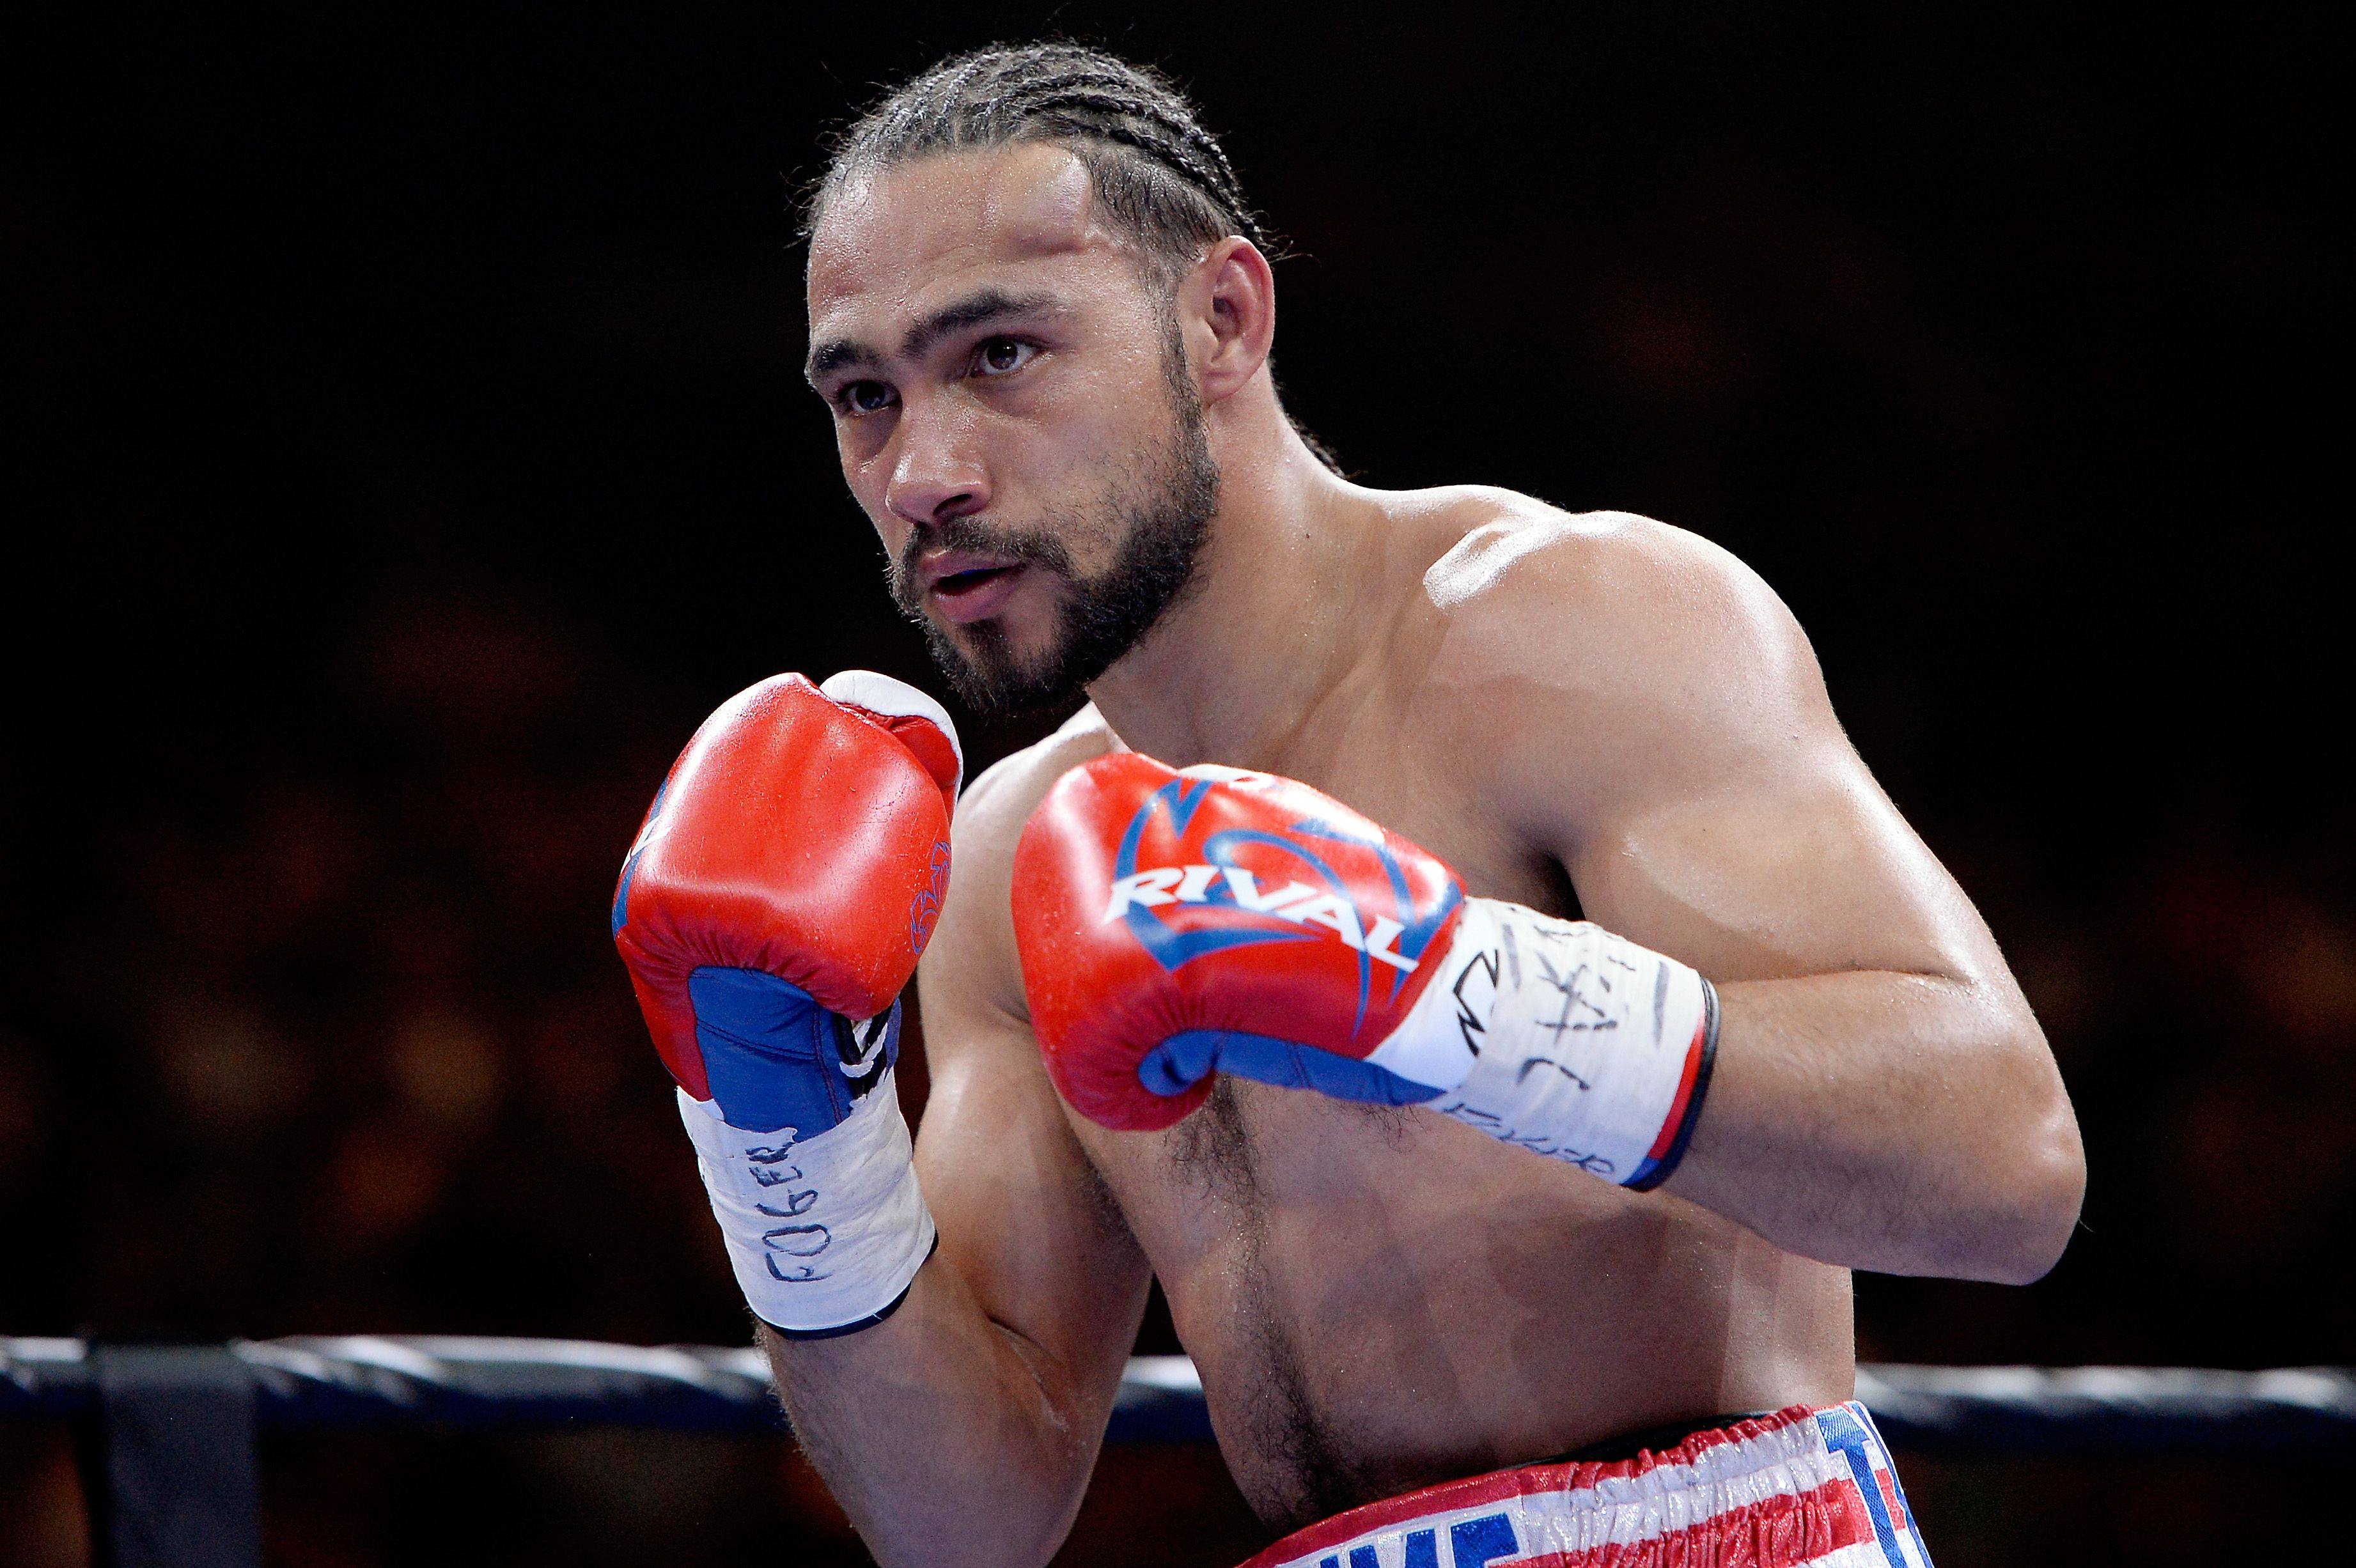 Unbeaten boxer Keith Thurman working to change the game